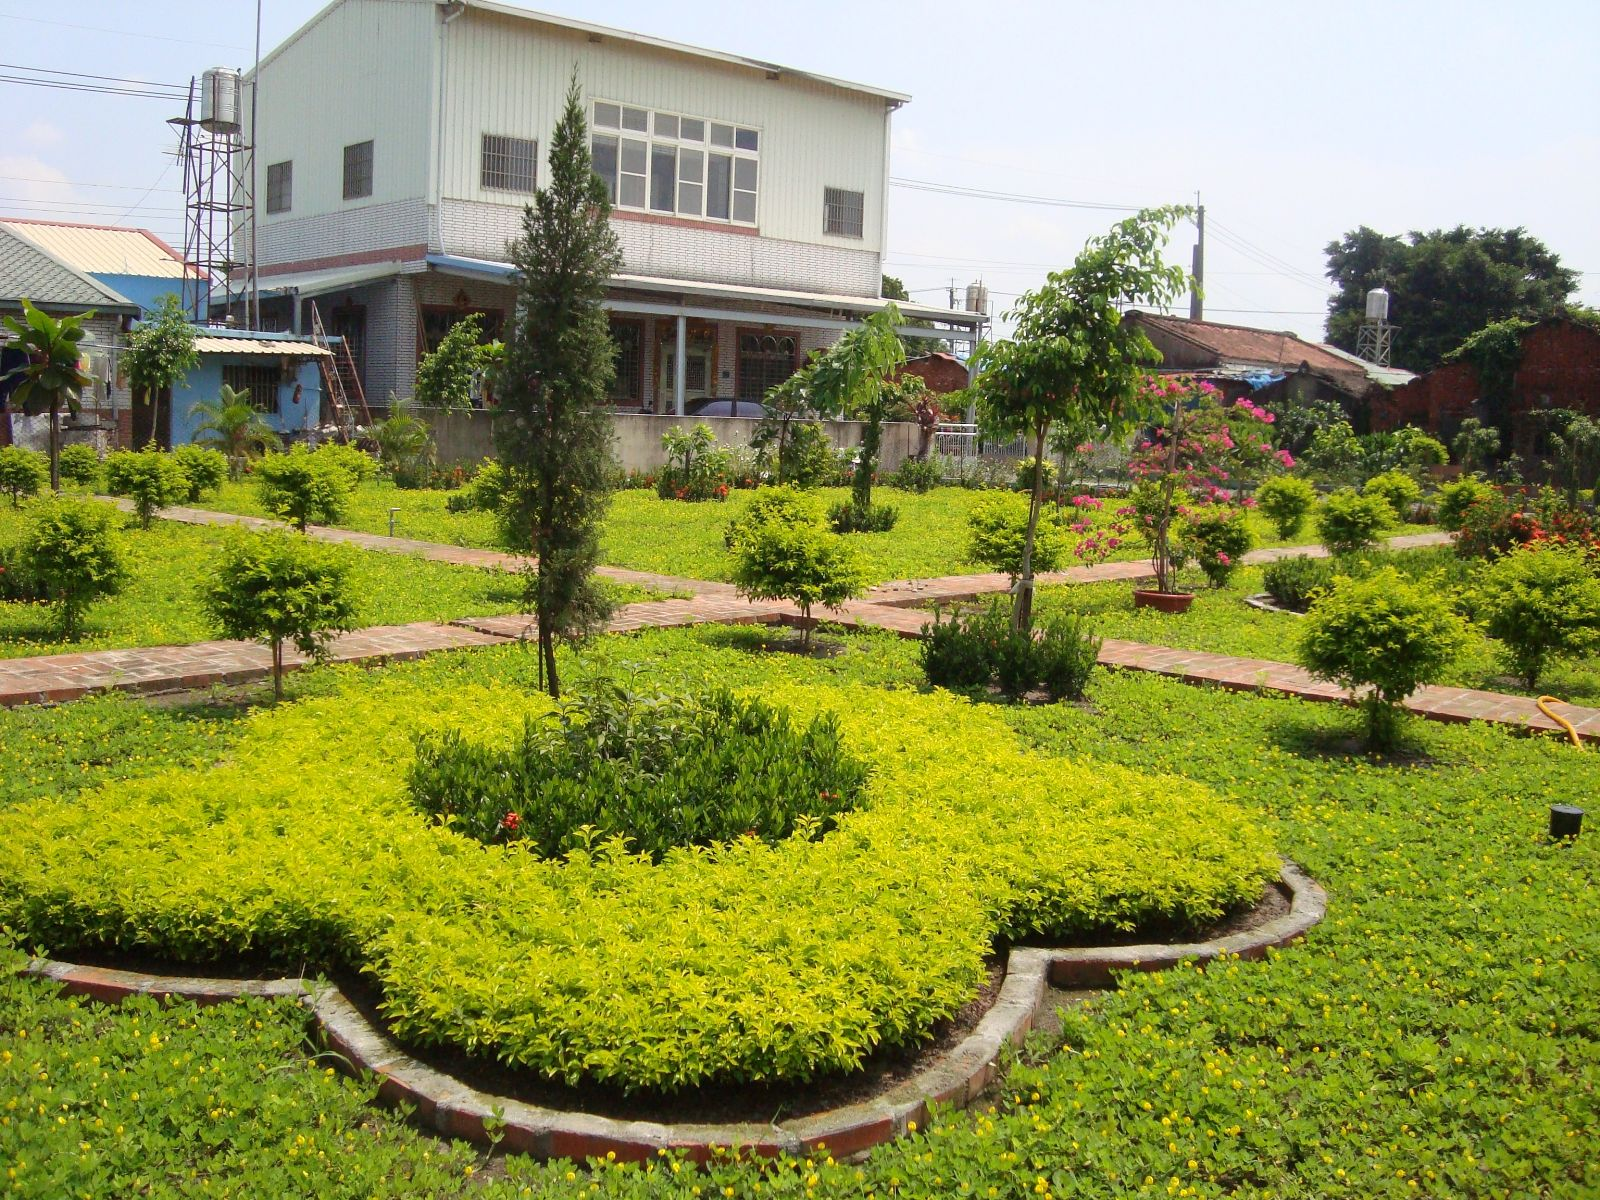 The Jiouming Community in Jiouru Township, Pingtung County - After the environmental reform, the community has become a beautiful garden.